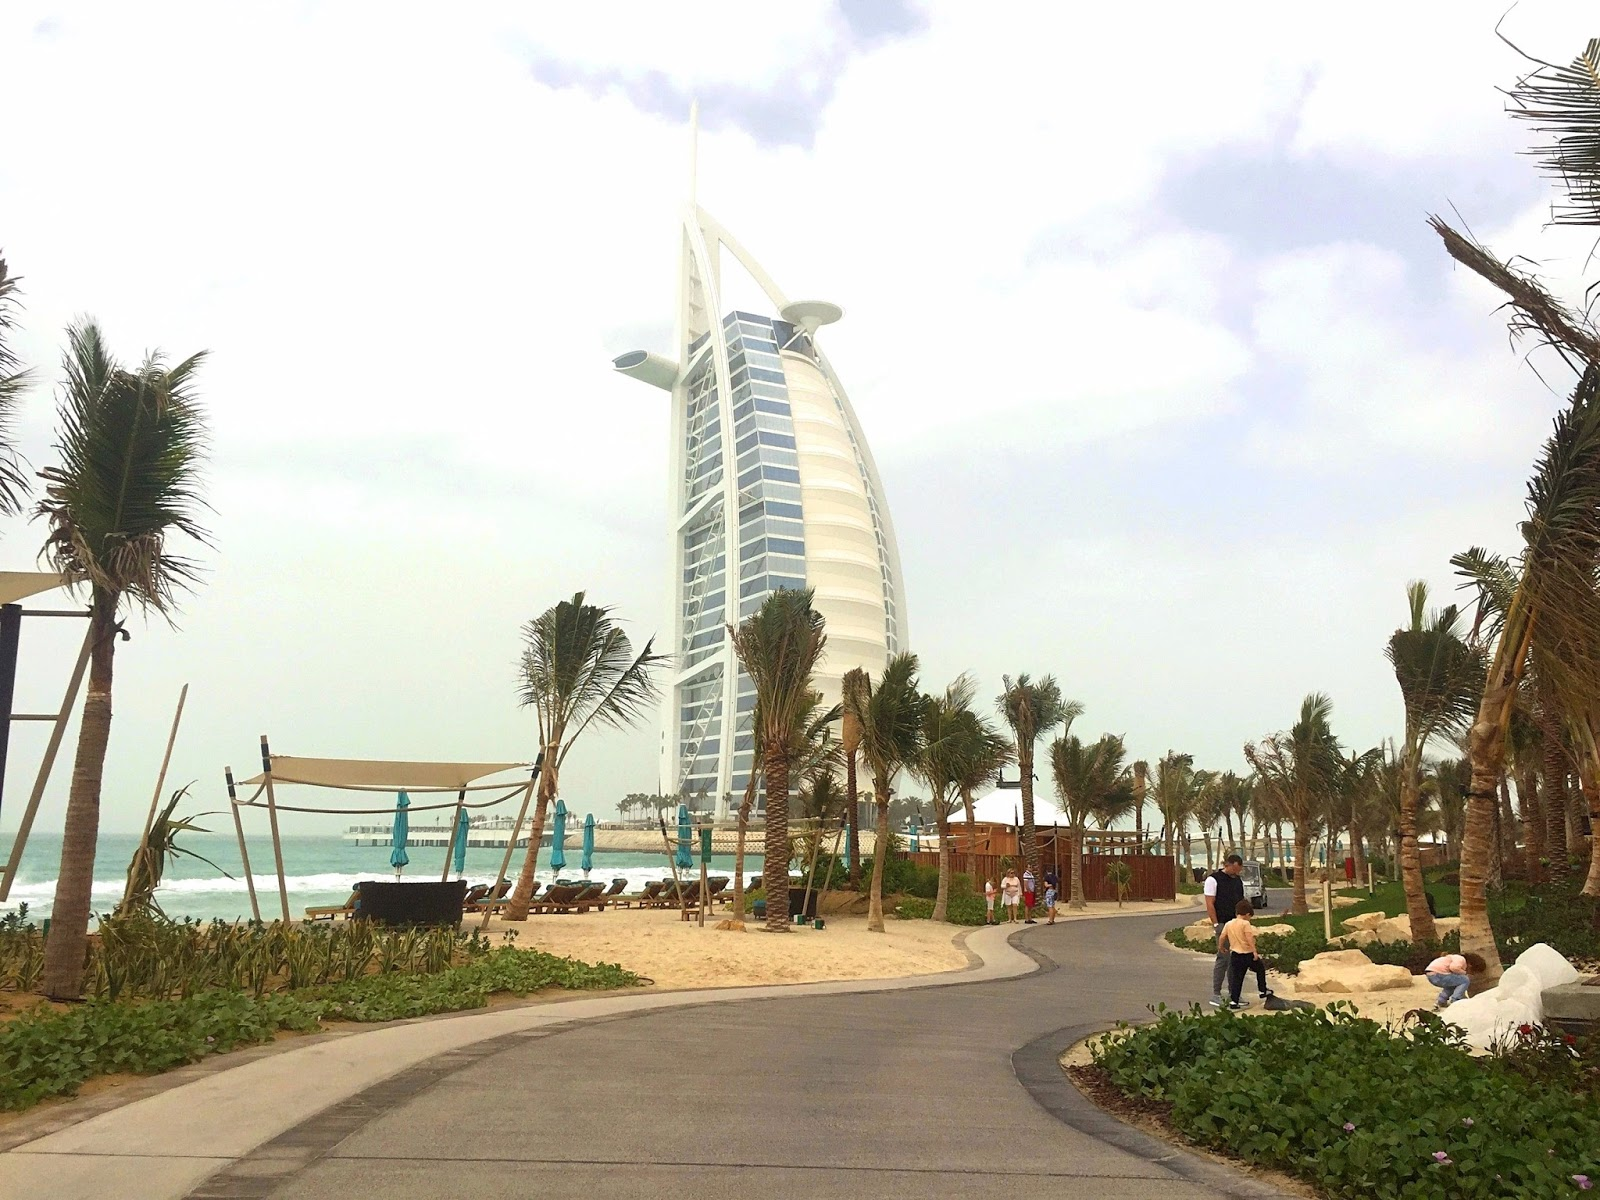 Burj Al Arab Review - Vegan Dubai Travel - Madinat Jumeirah Access